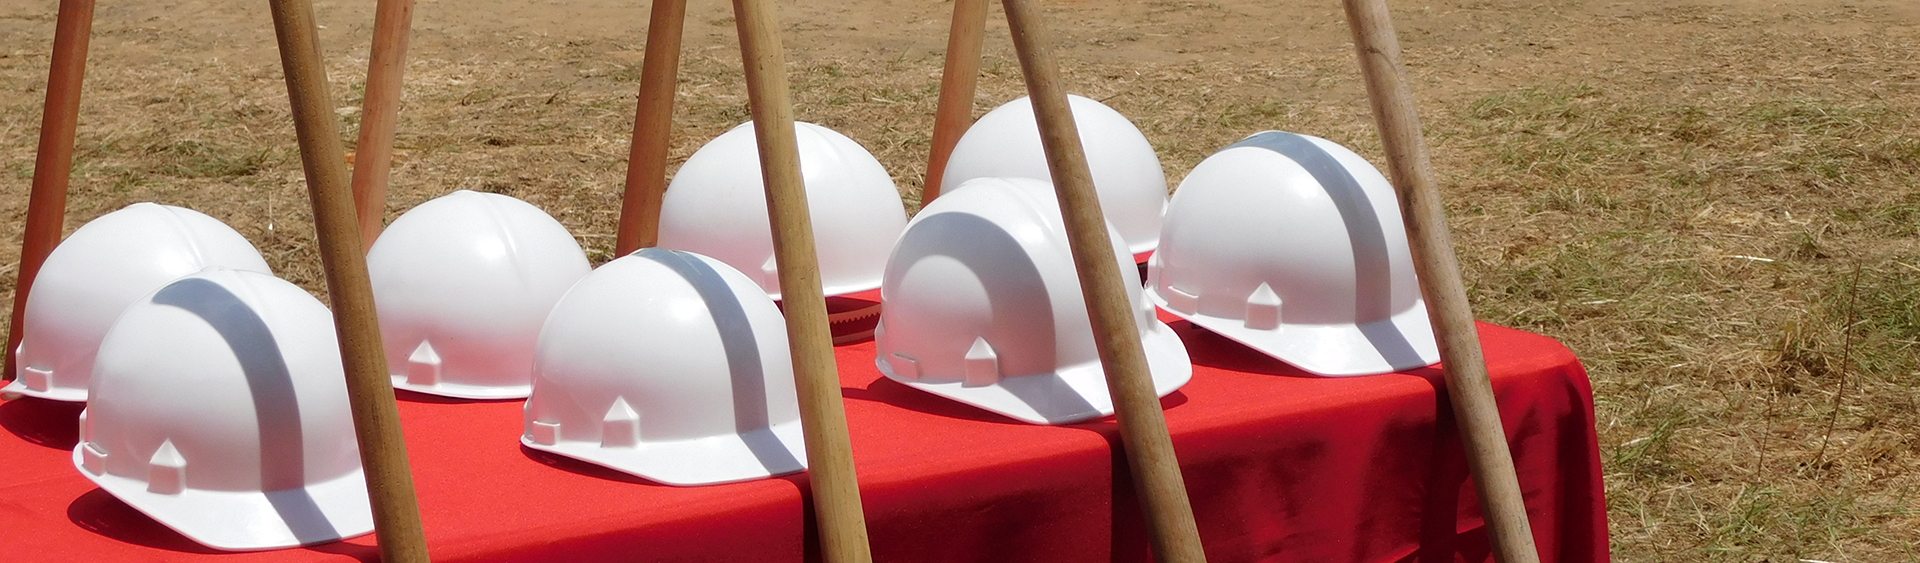 Towne Place Suites Groundbreaking, Montgomery Area Chamber of Commerce, Montgomery Chamber, MGMChamber